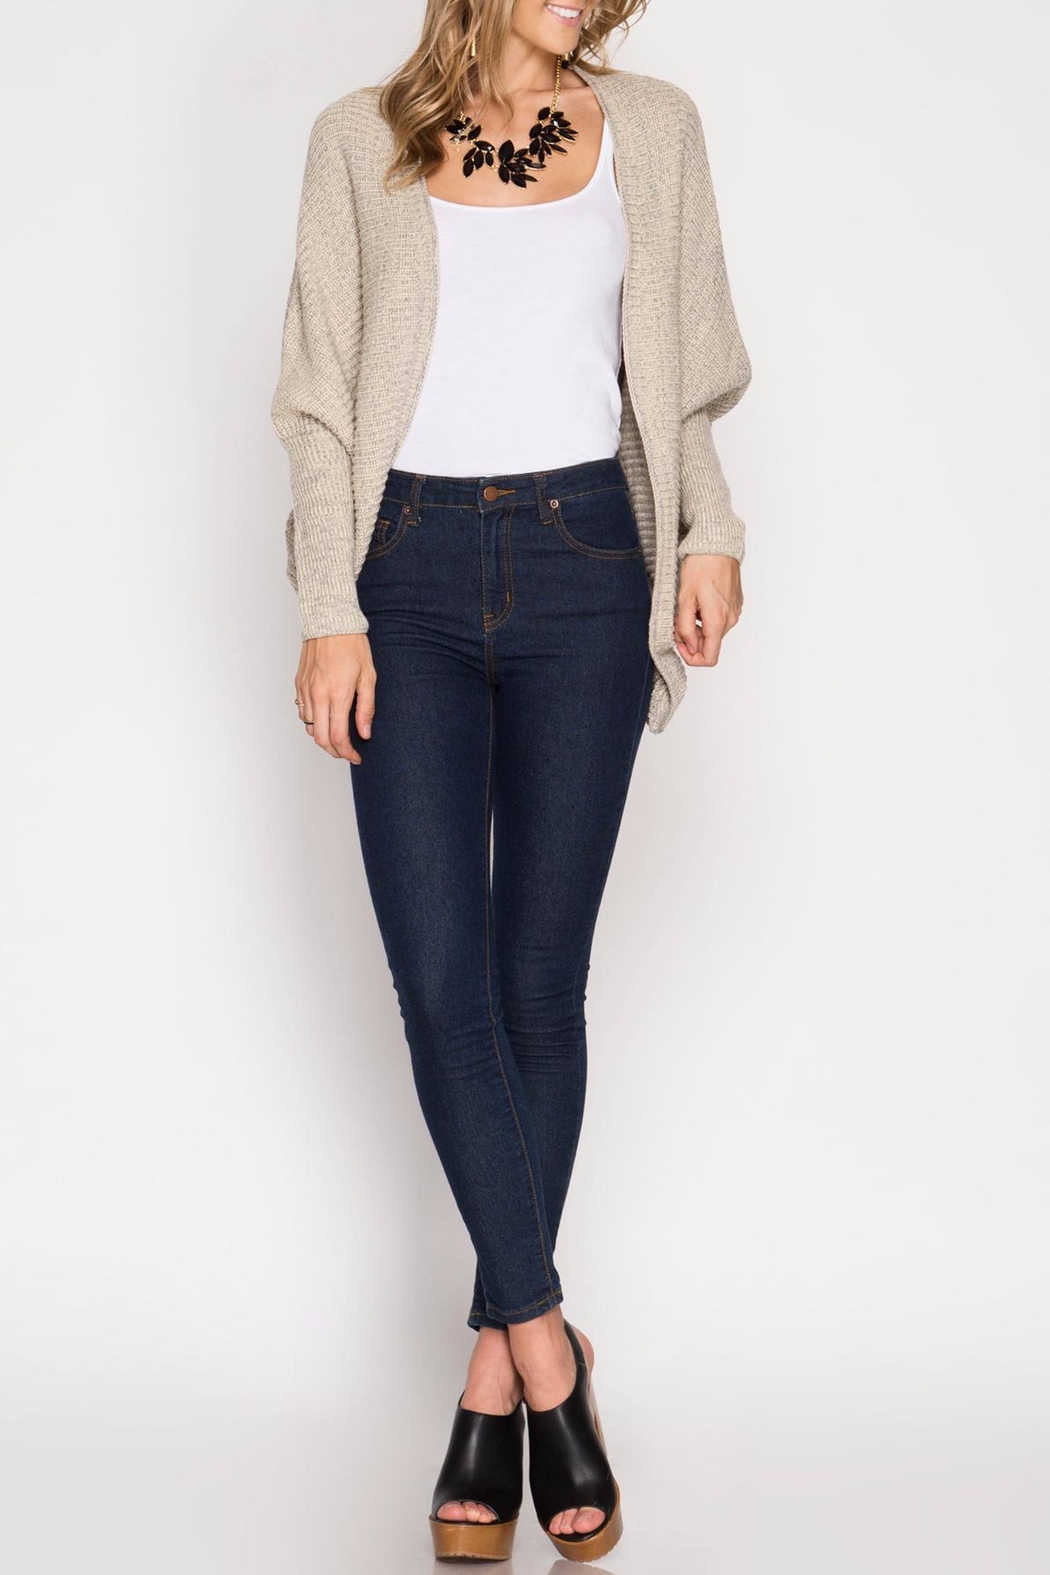 She + Sky Elvira Open Cardigan - Front Cropped Image